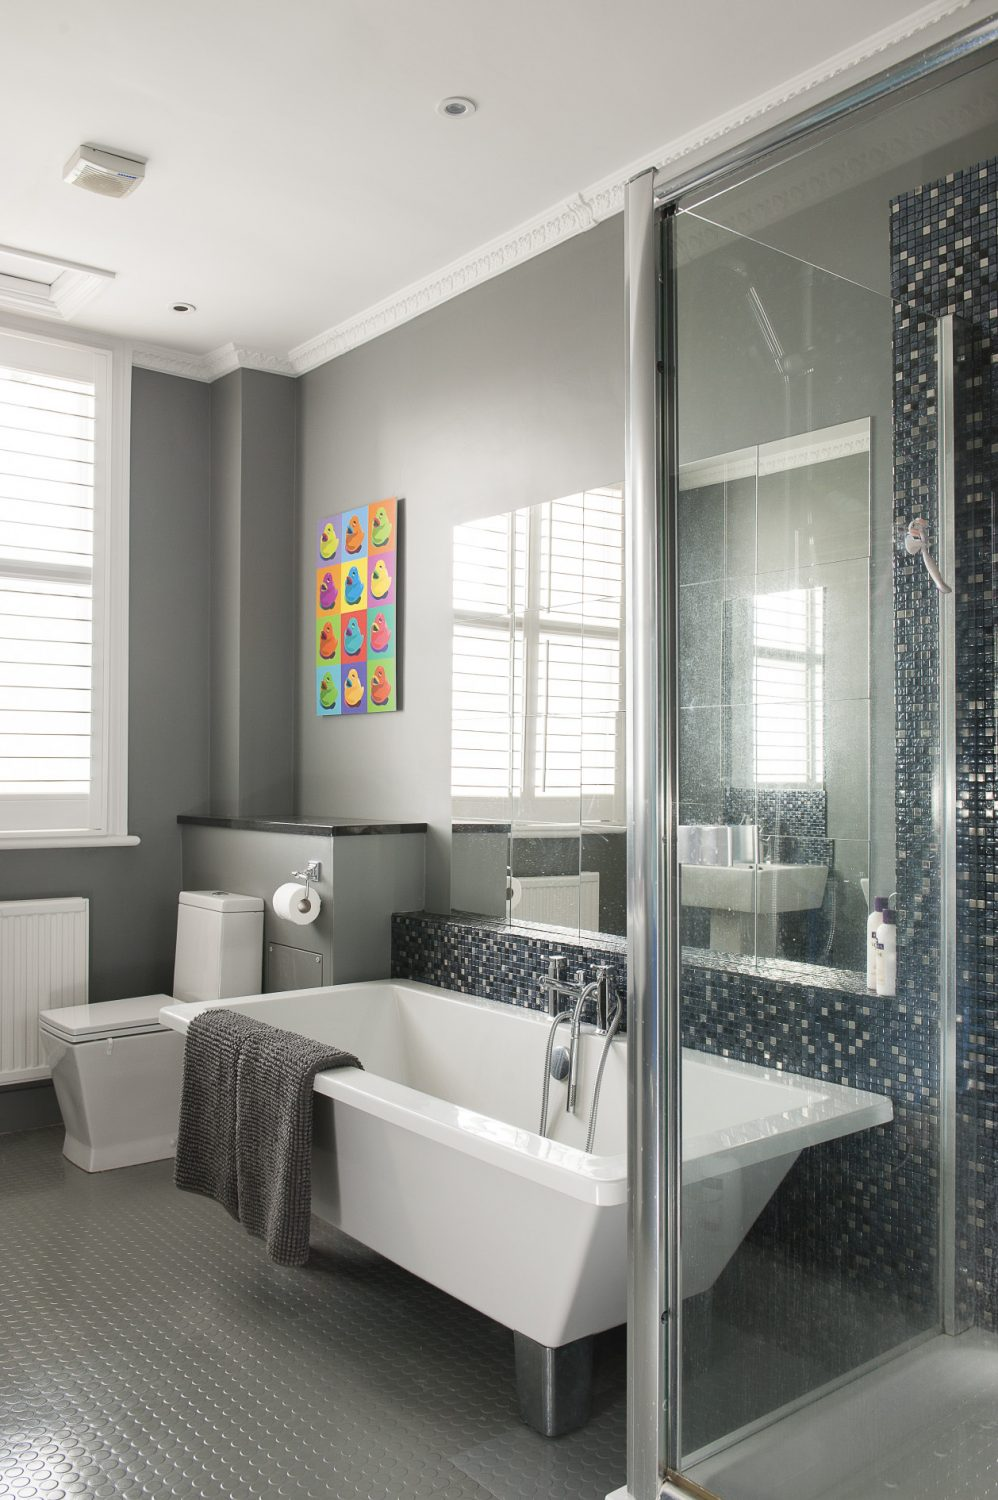 Adhering to a colour palette of cool greys in the family bathroom, Catherine has chosen rubber flooring and striking pearlised mosaic tiles